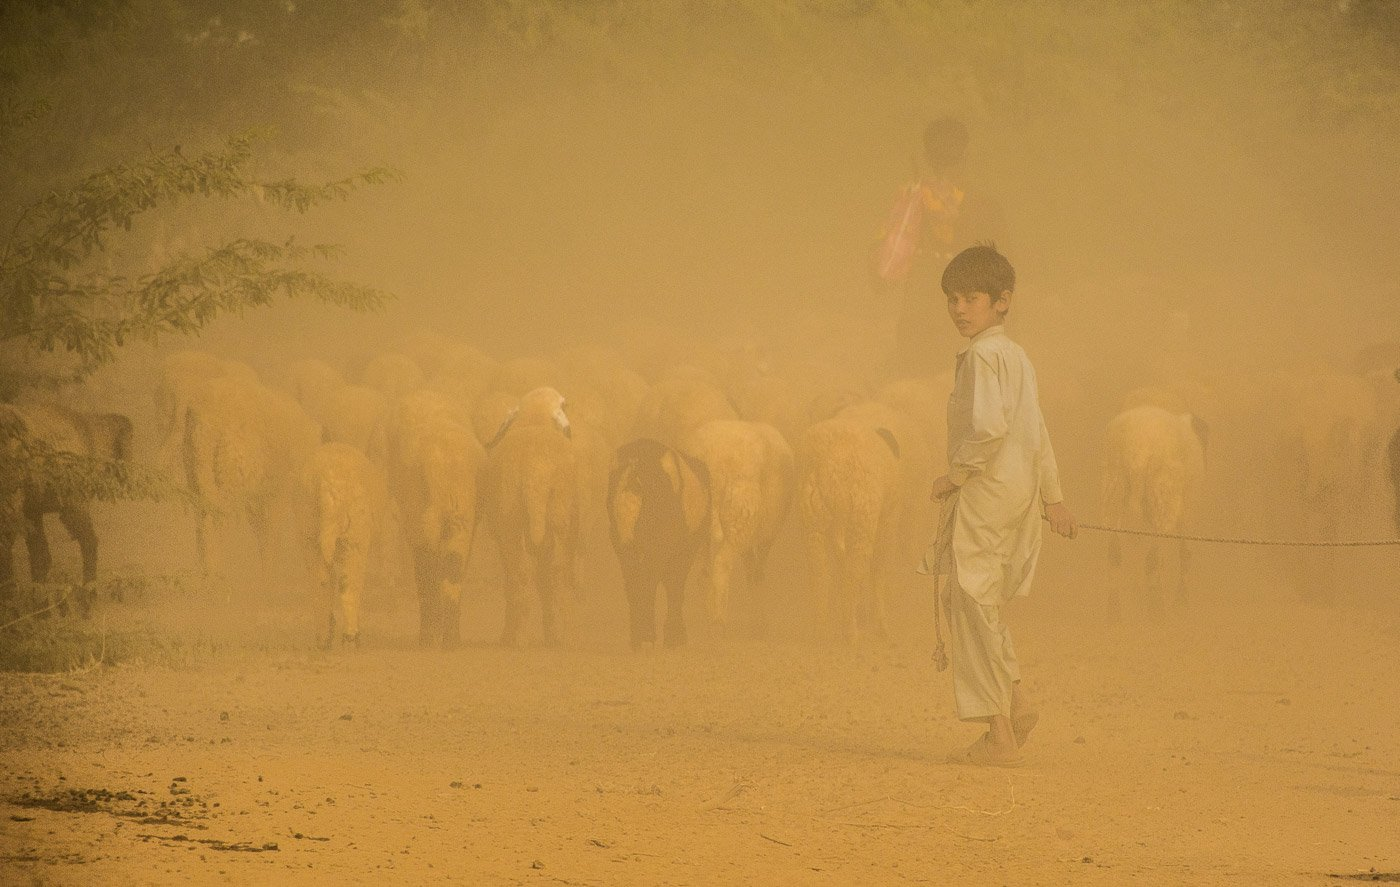 A Fakirani Jat kid moving with his herd while a dust storm gathers in summer. Credit: Ritayan Mukherjee/PARI